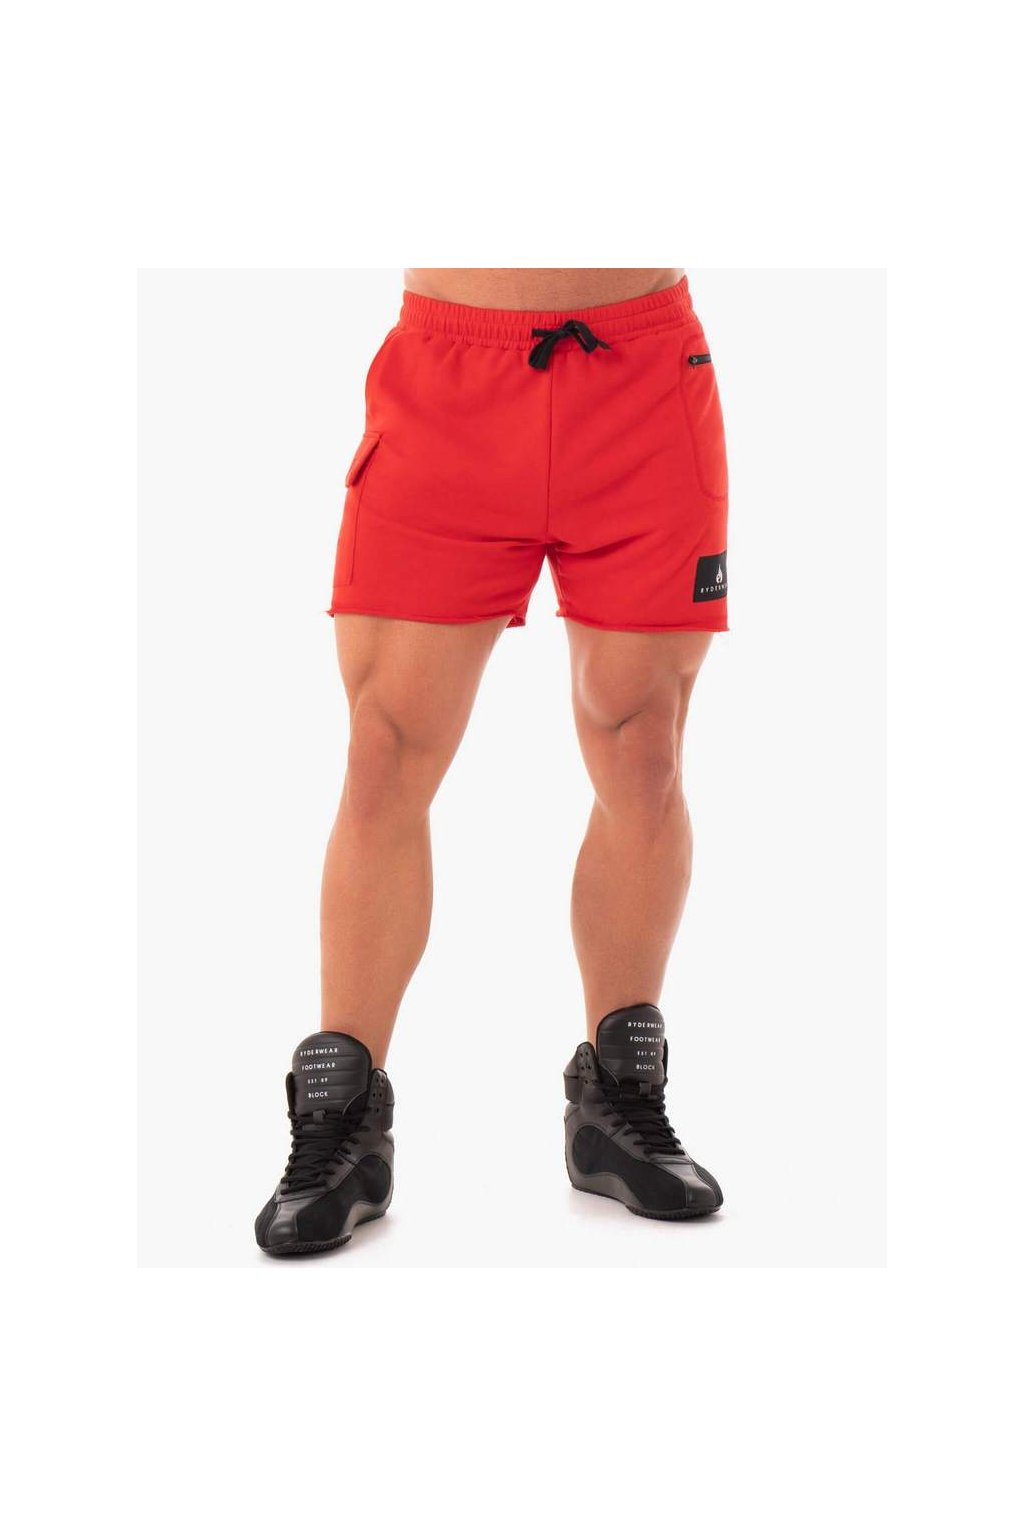 TRACK SHORTS RED 1 1000x1000